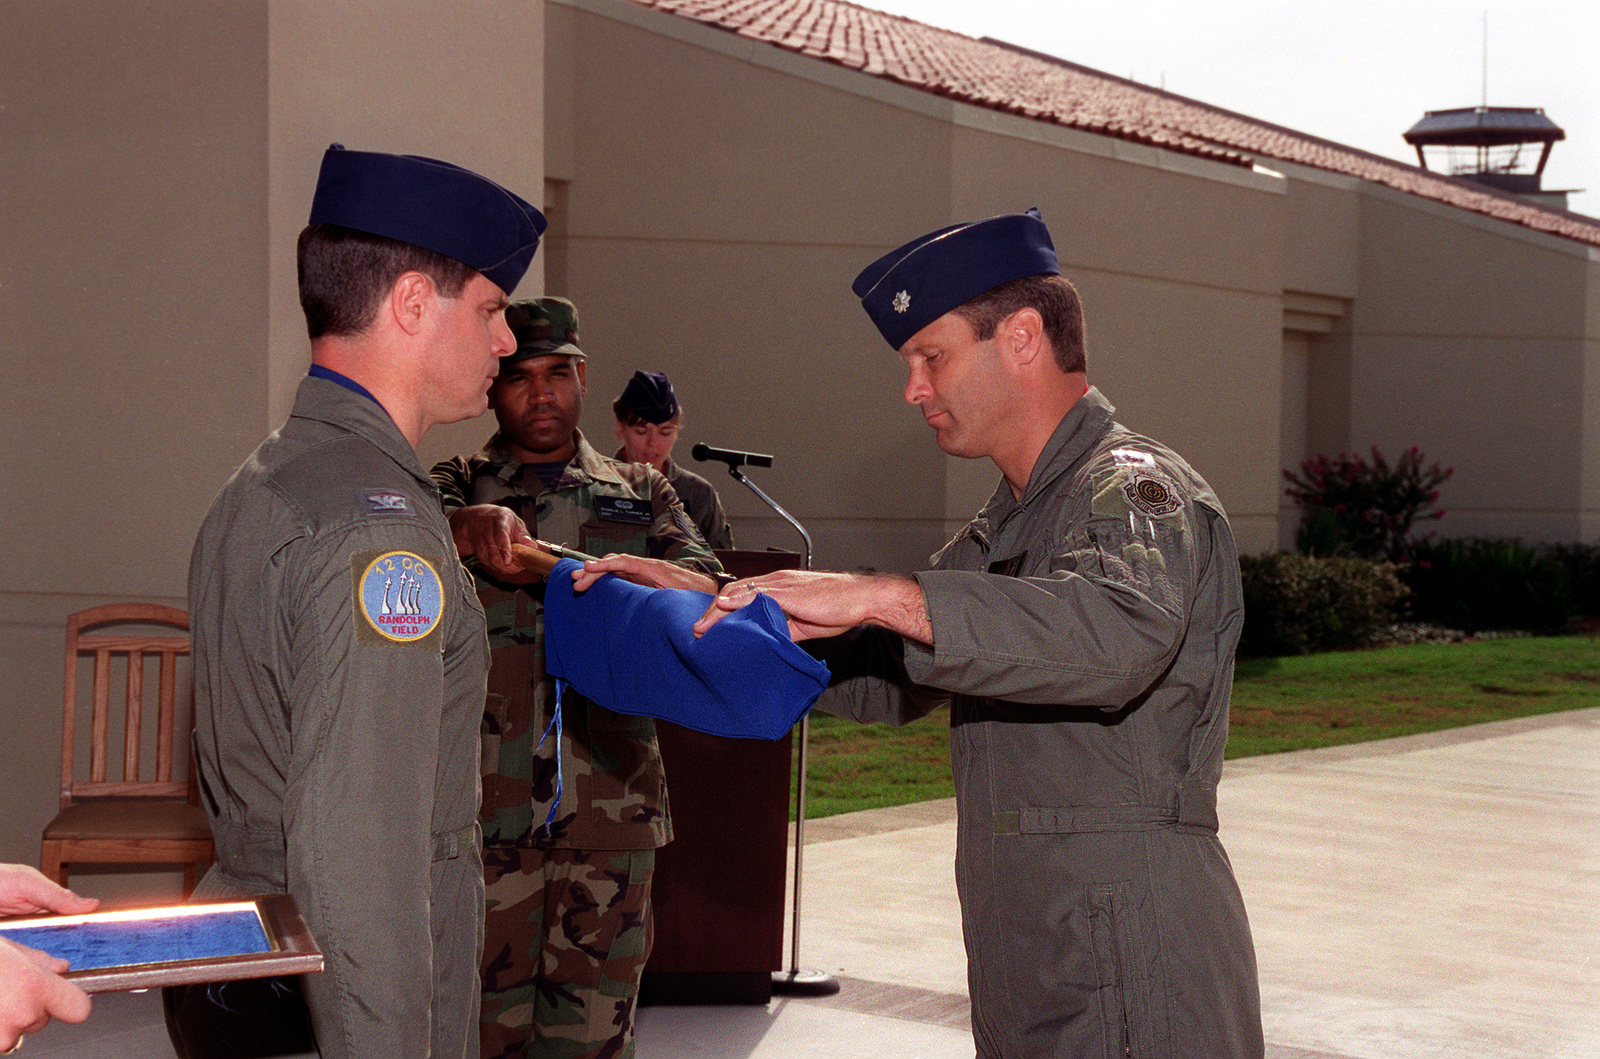 At the deactivation of the 563rd Flying Training Squadron, LT. COL. Holloway covers the unit's guidon. The 453rd Electronic Warfare School and Systems Squadron came from Mather Air Force Base, Calif. Both schools were combined and formed the 563rd here at Randolph Air Force Base. The 563rd's mission was flying instruction and graduate level electronic warfare